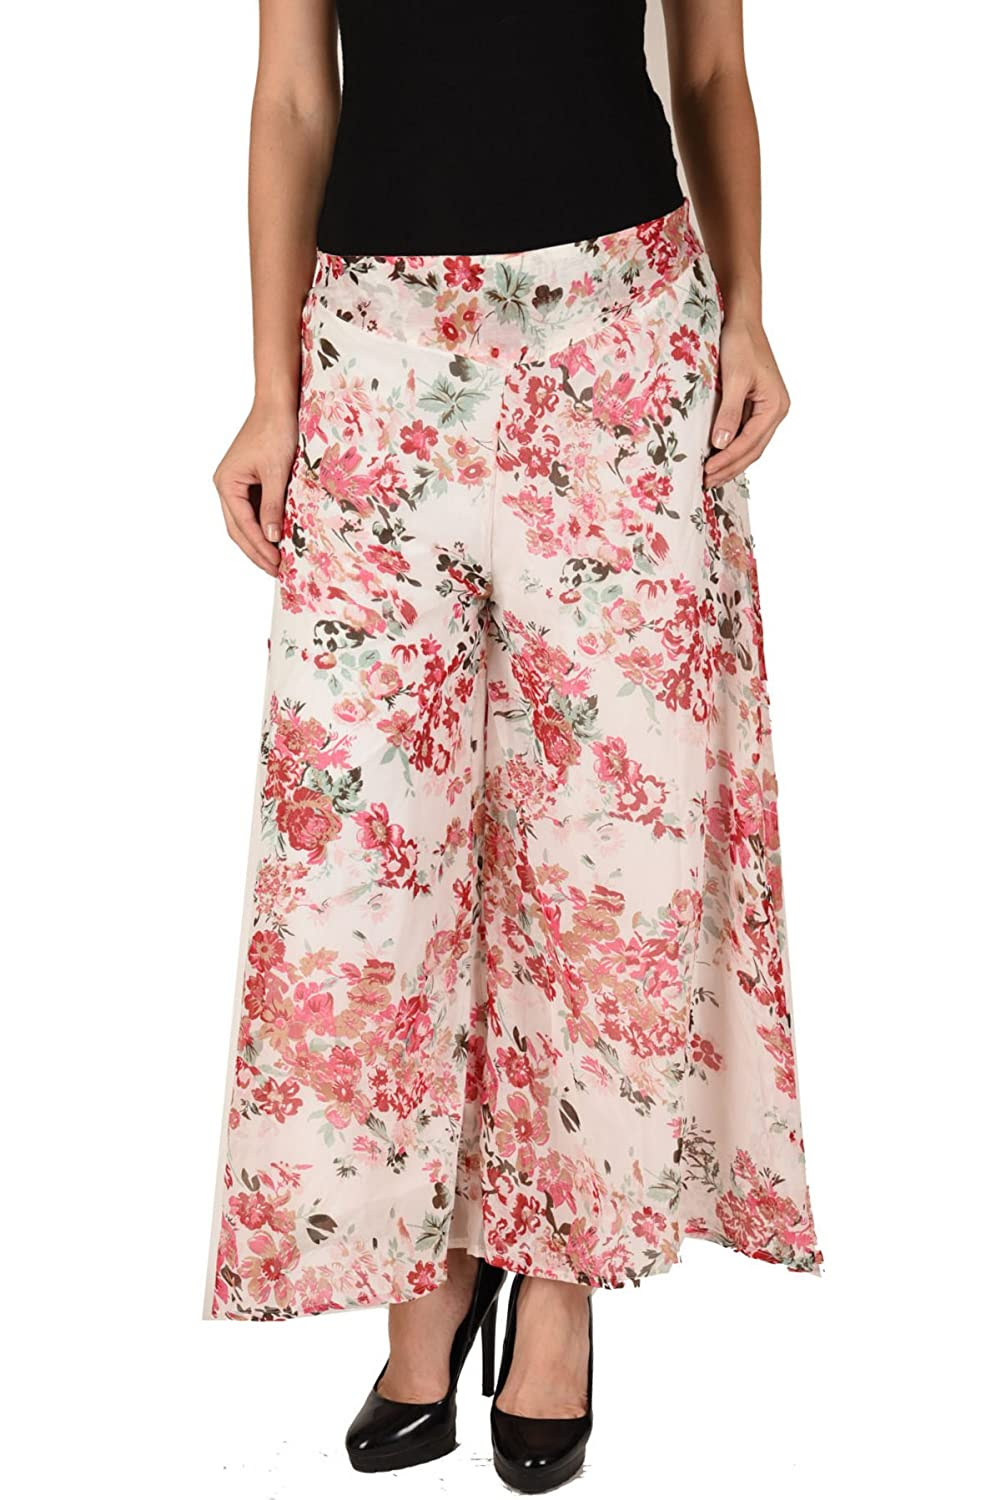 Deals on  Women Stylish Floral Print Georgette Plazzo